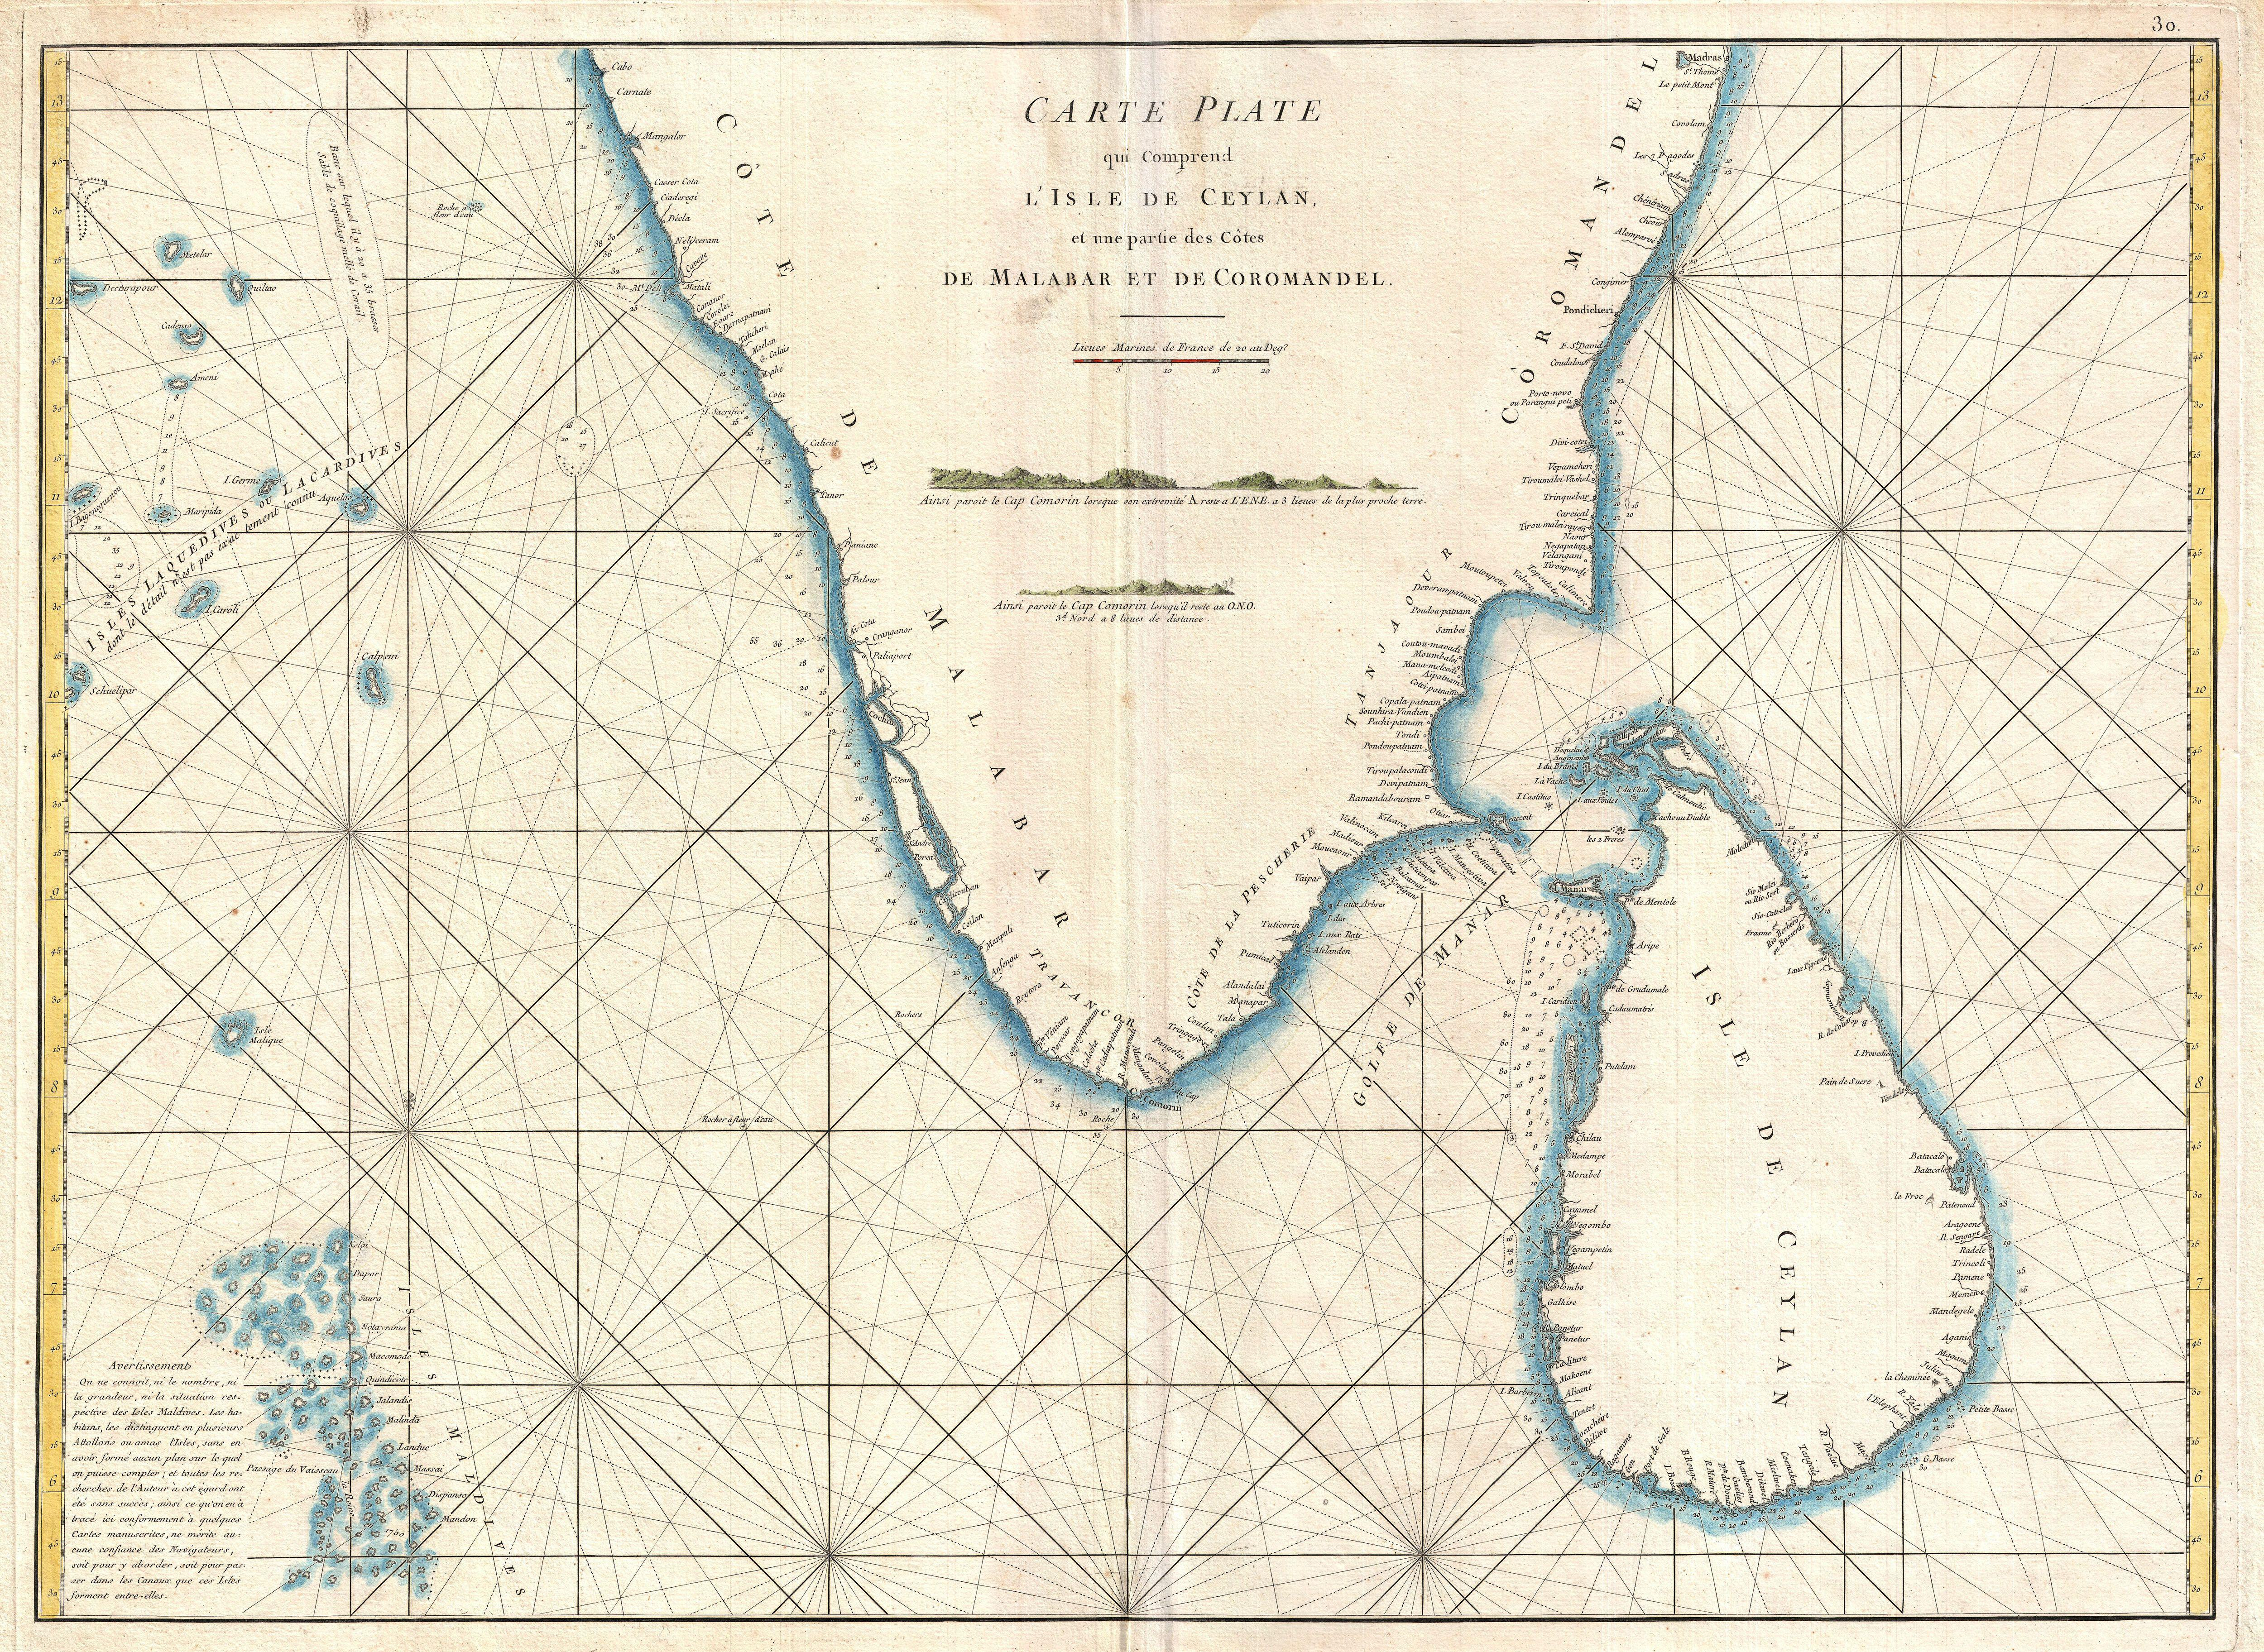 Marine Charts: 1775 Mannevillette Map of Southern India and Ceylon or Sri ,Chart